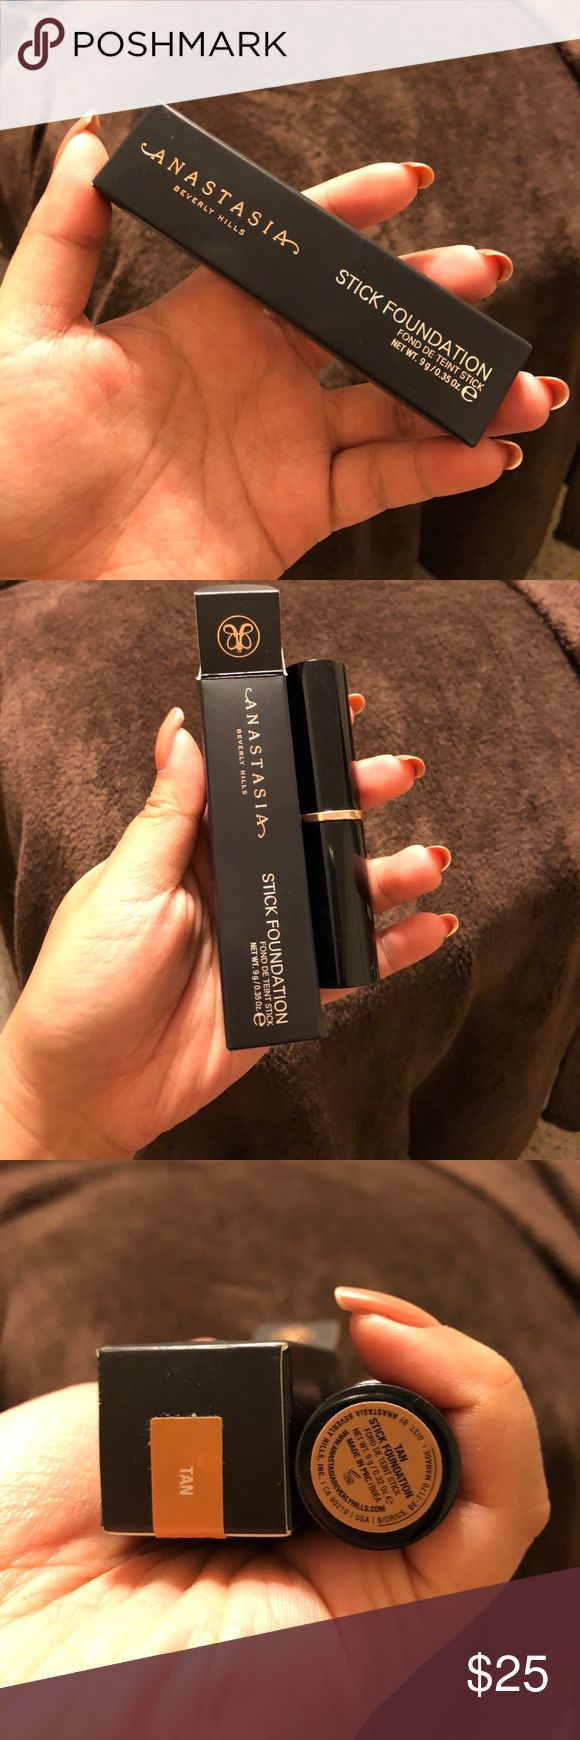 Anastasia stick foundation Tan Brand new in box. Swatched using a brush, never applied directly to skin. Has been disinfected. Full stick left! Anastasia Beverly Hills Makeup Foundation